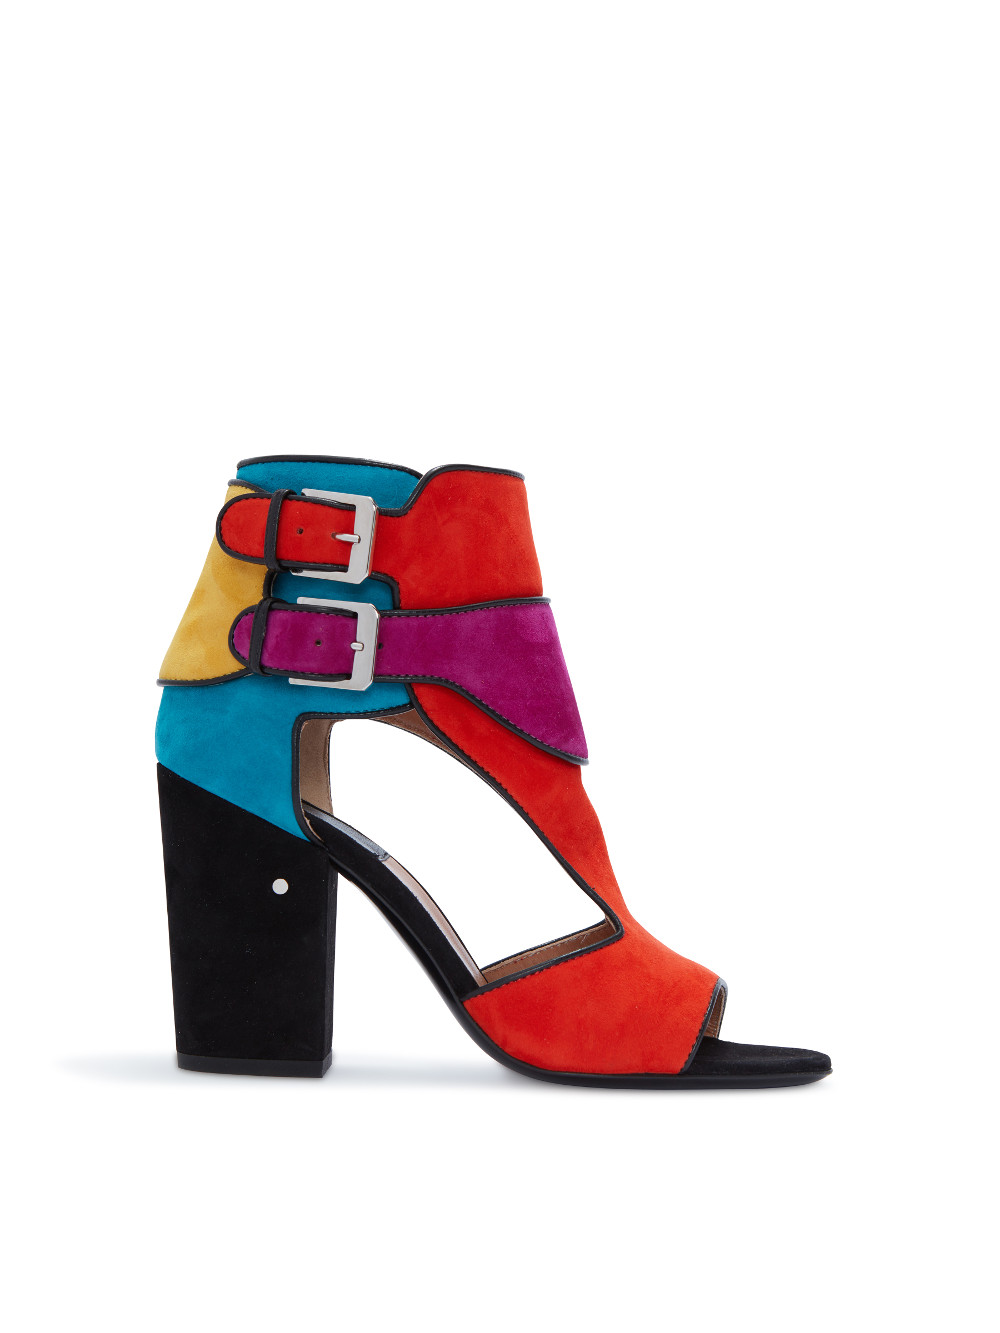 LD_PF18_Rush_Multi Colored Pop_5374.jpg